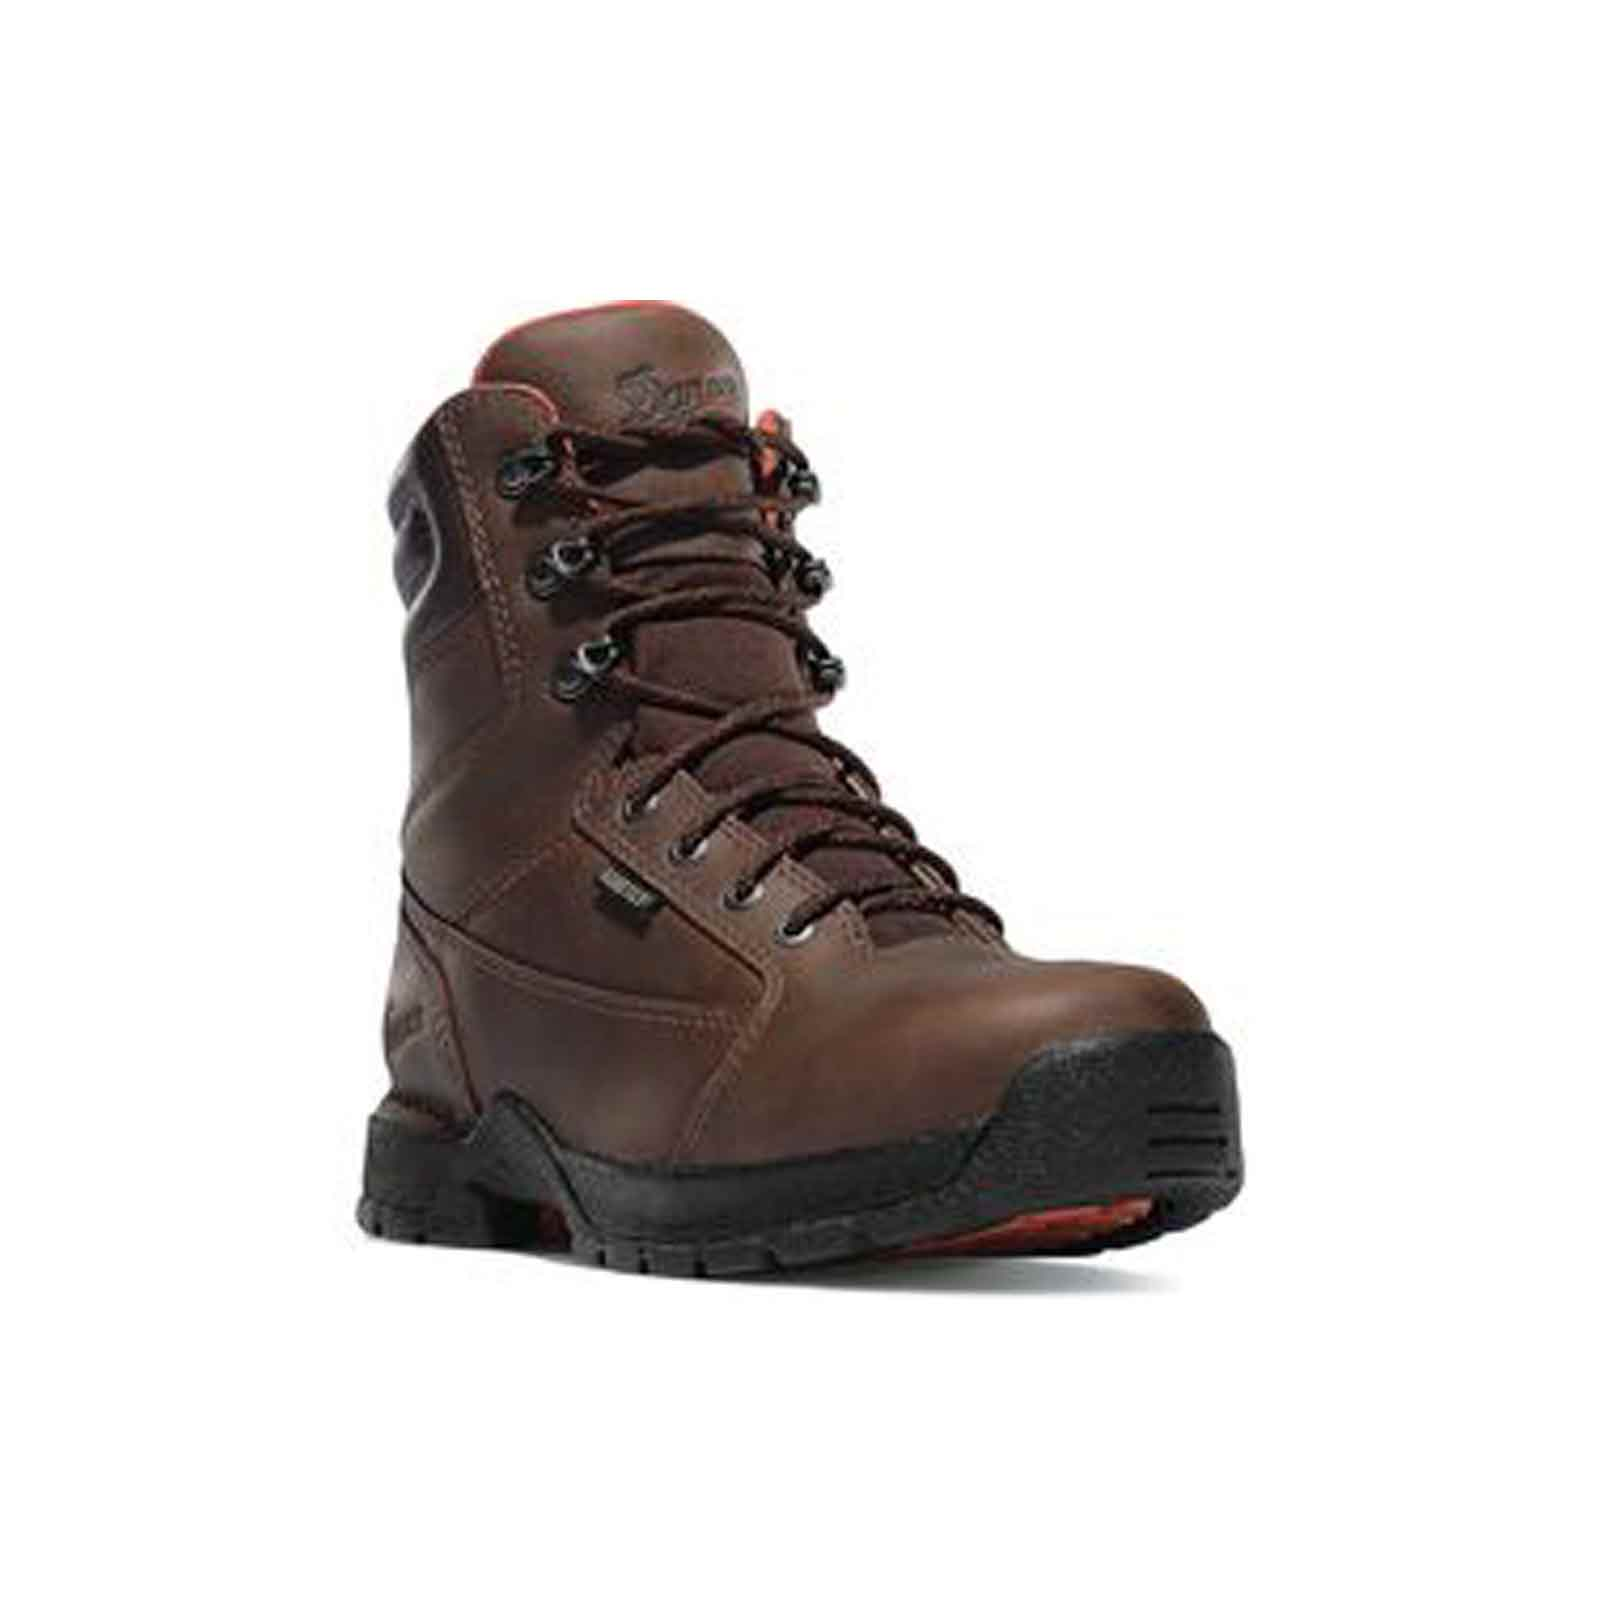 Awesome Danner Womens Mt Defiance 55 Inch Hiking Boots